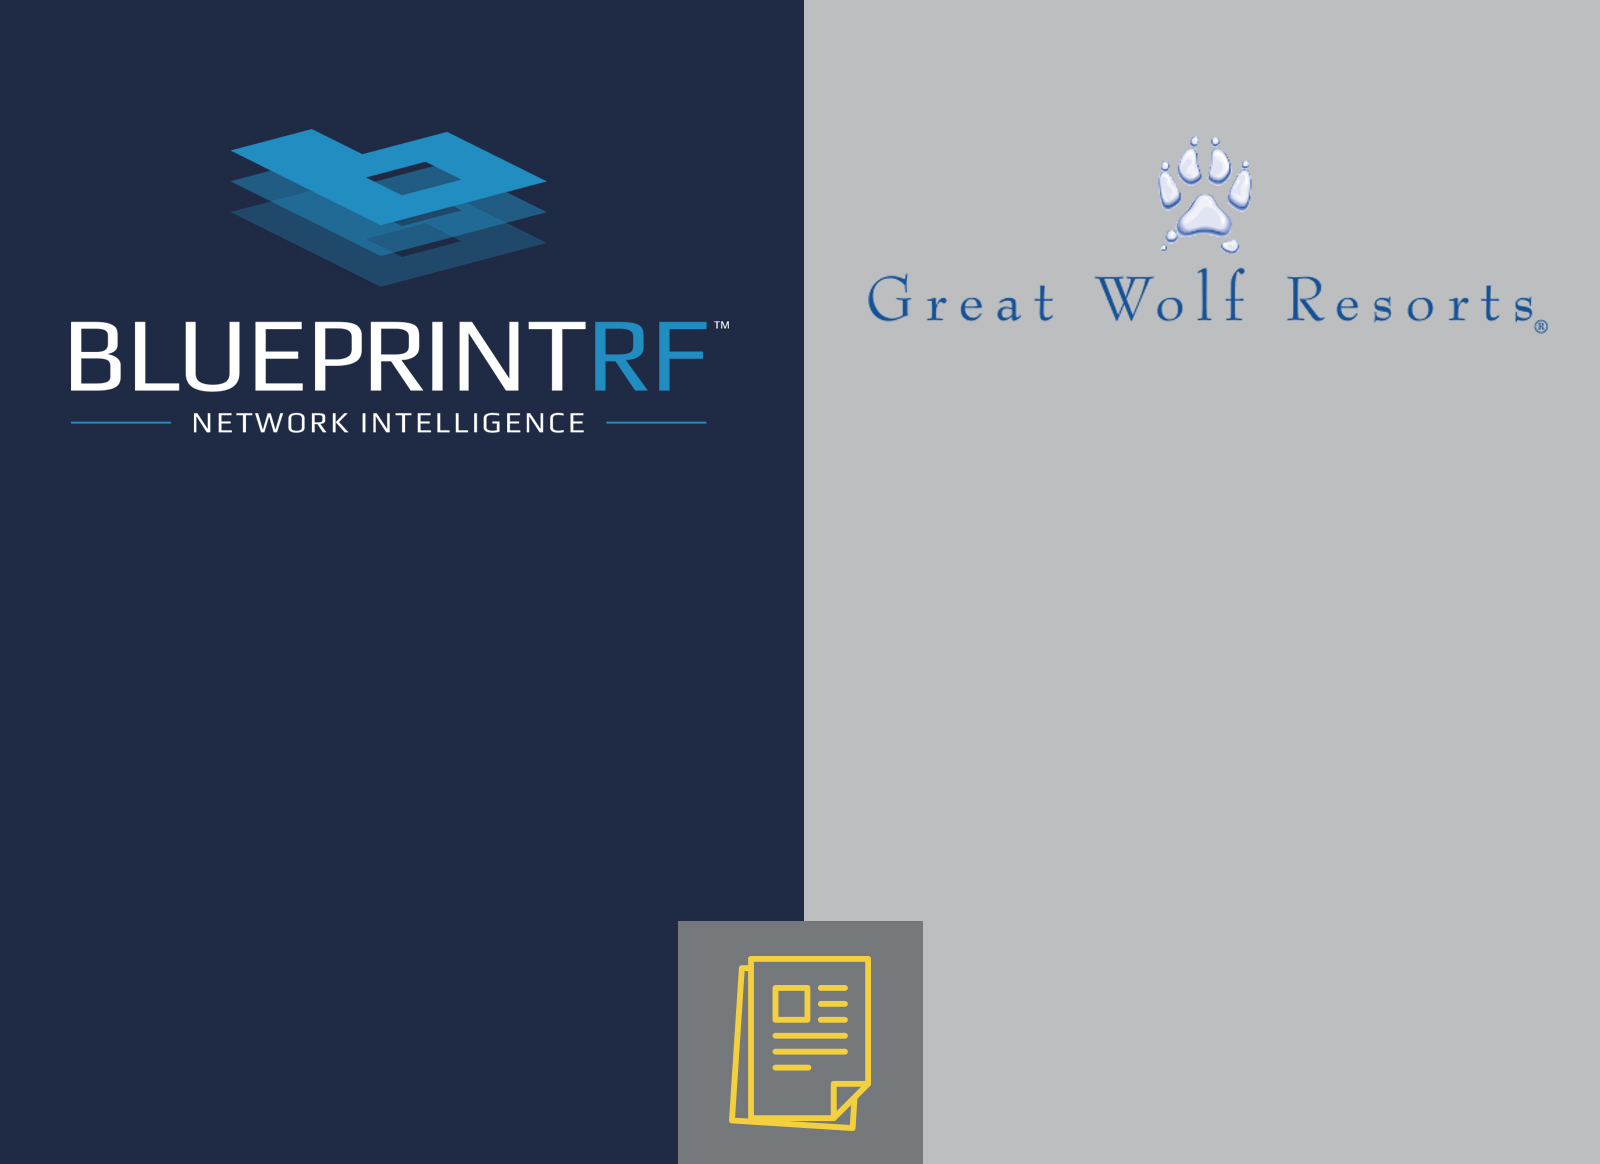 Blueprint RF, Great Wolf Lodge News